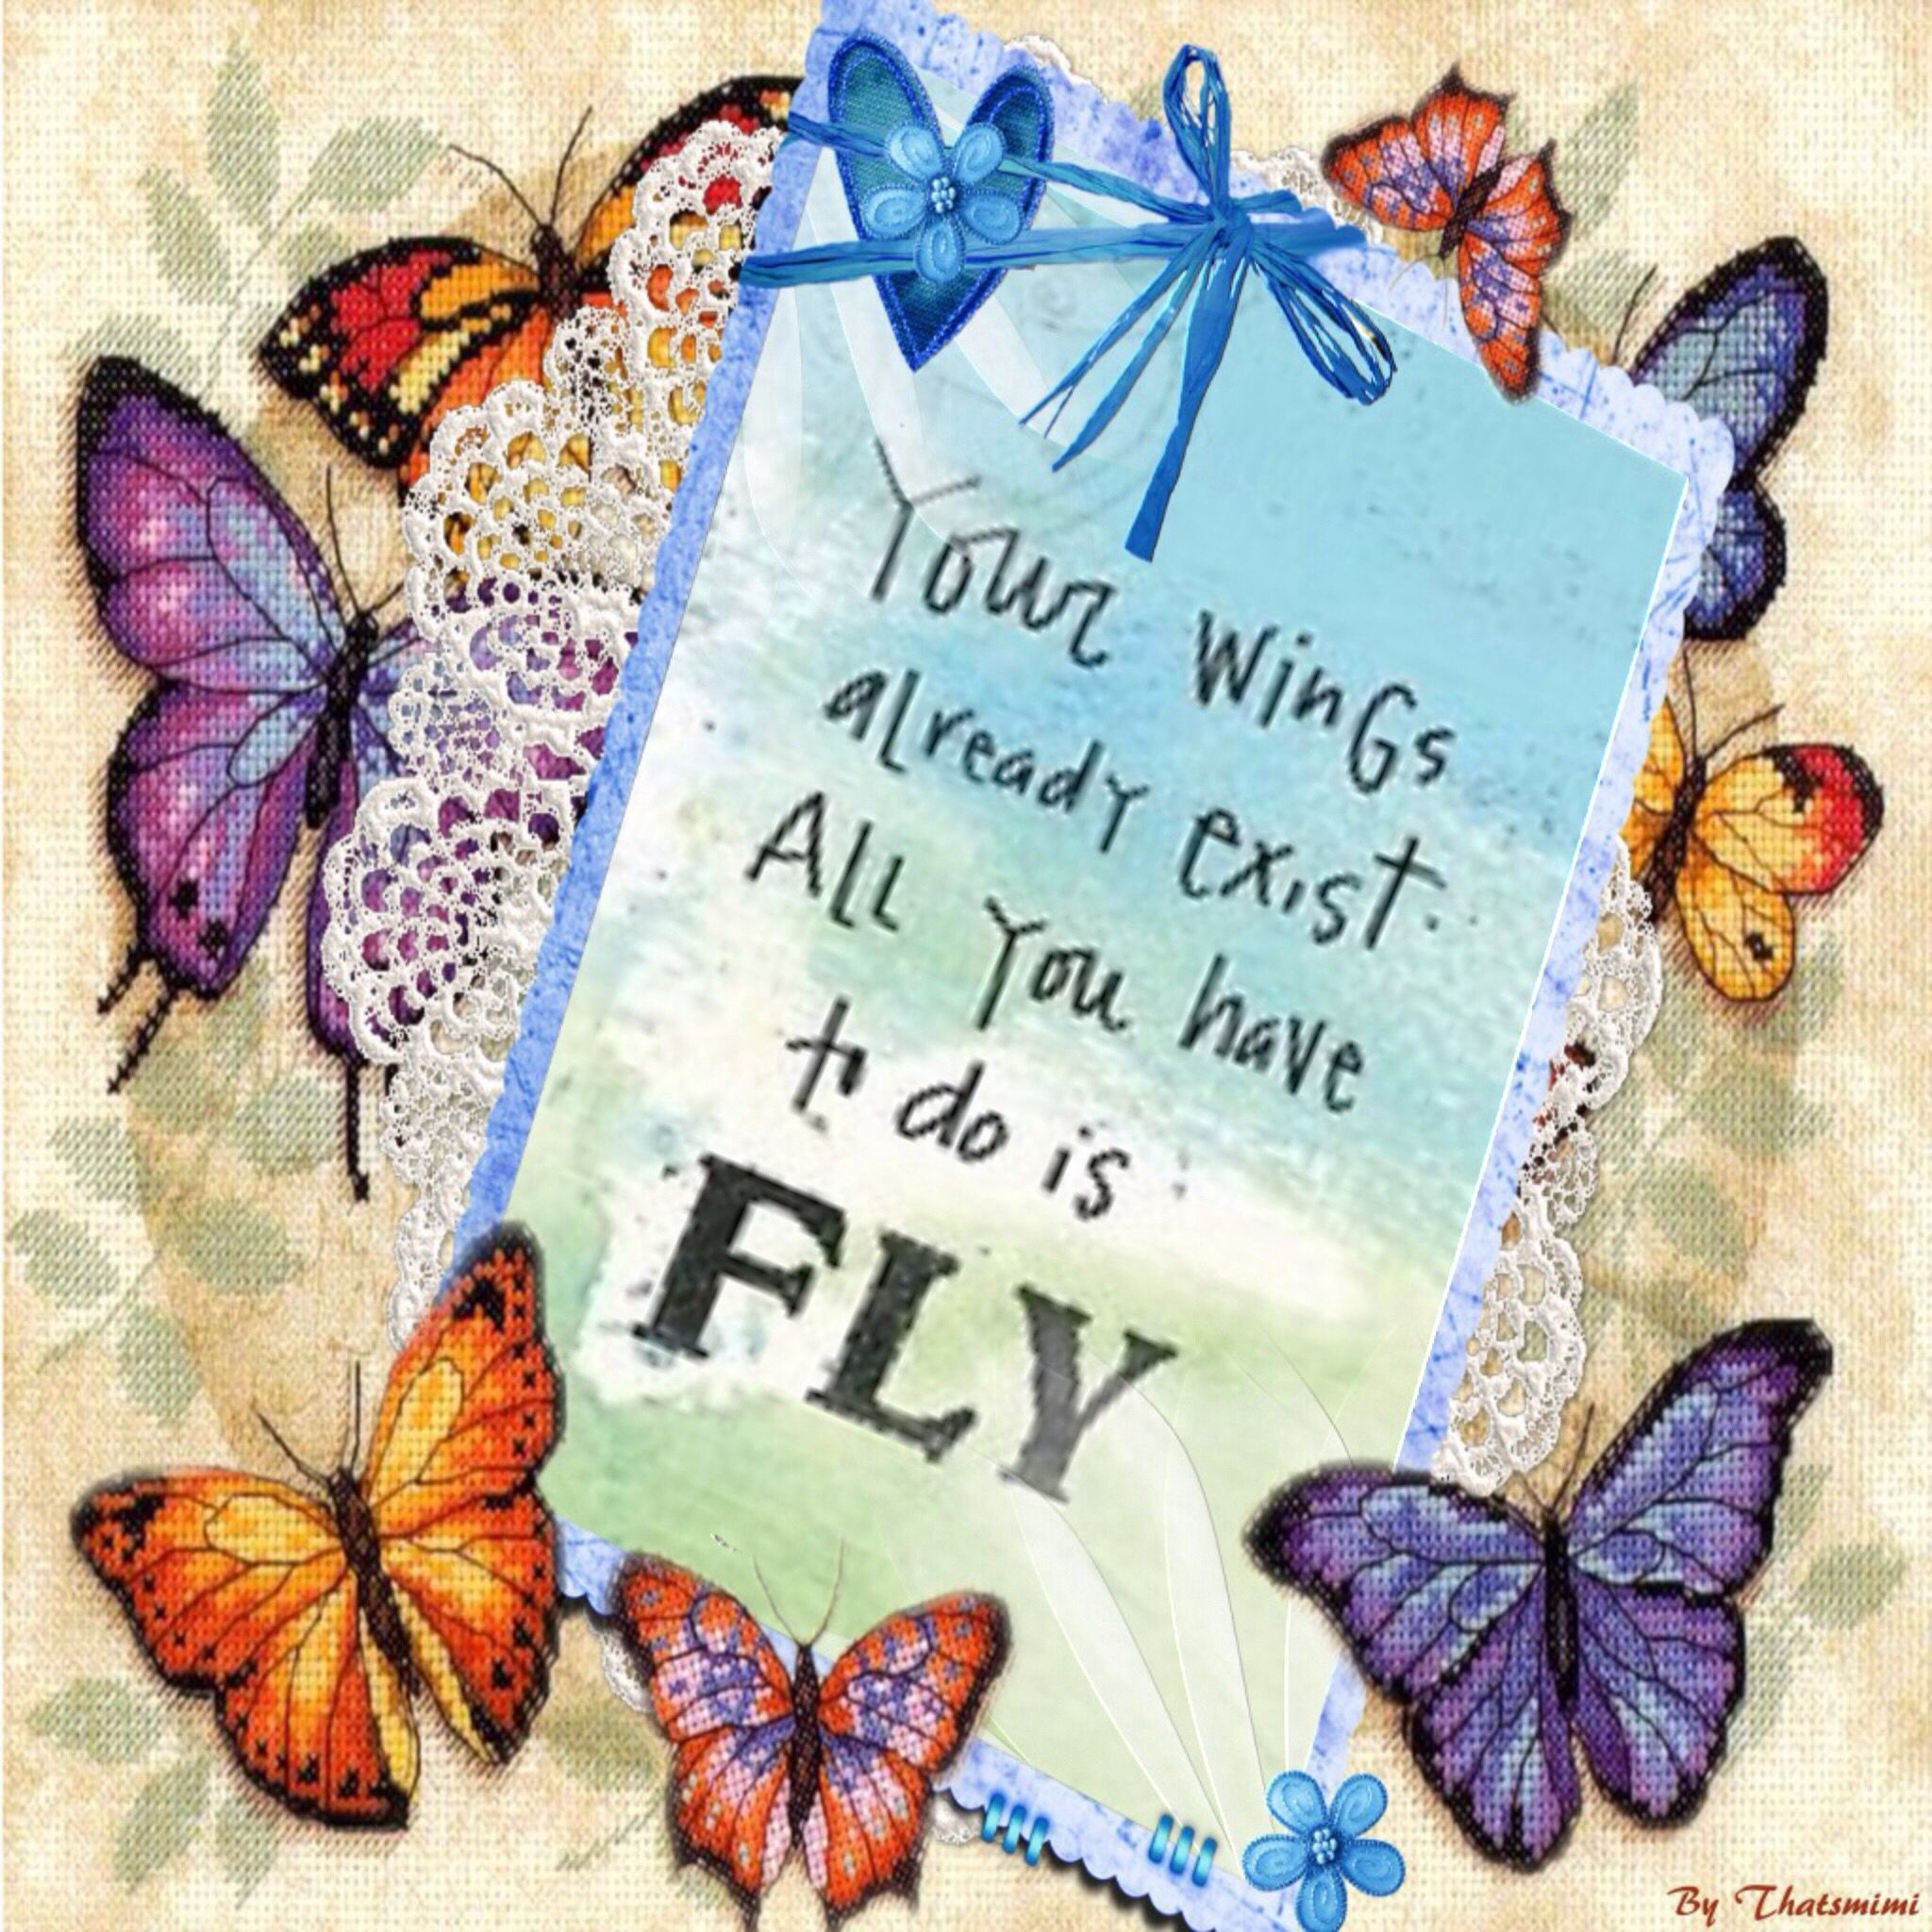 Butterfly Quotes Stunning Butterfly Blessings  Butterfly~  Pinterest  Blessings Butterfly